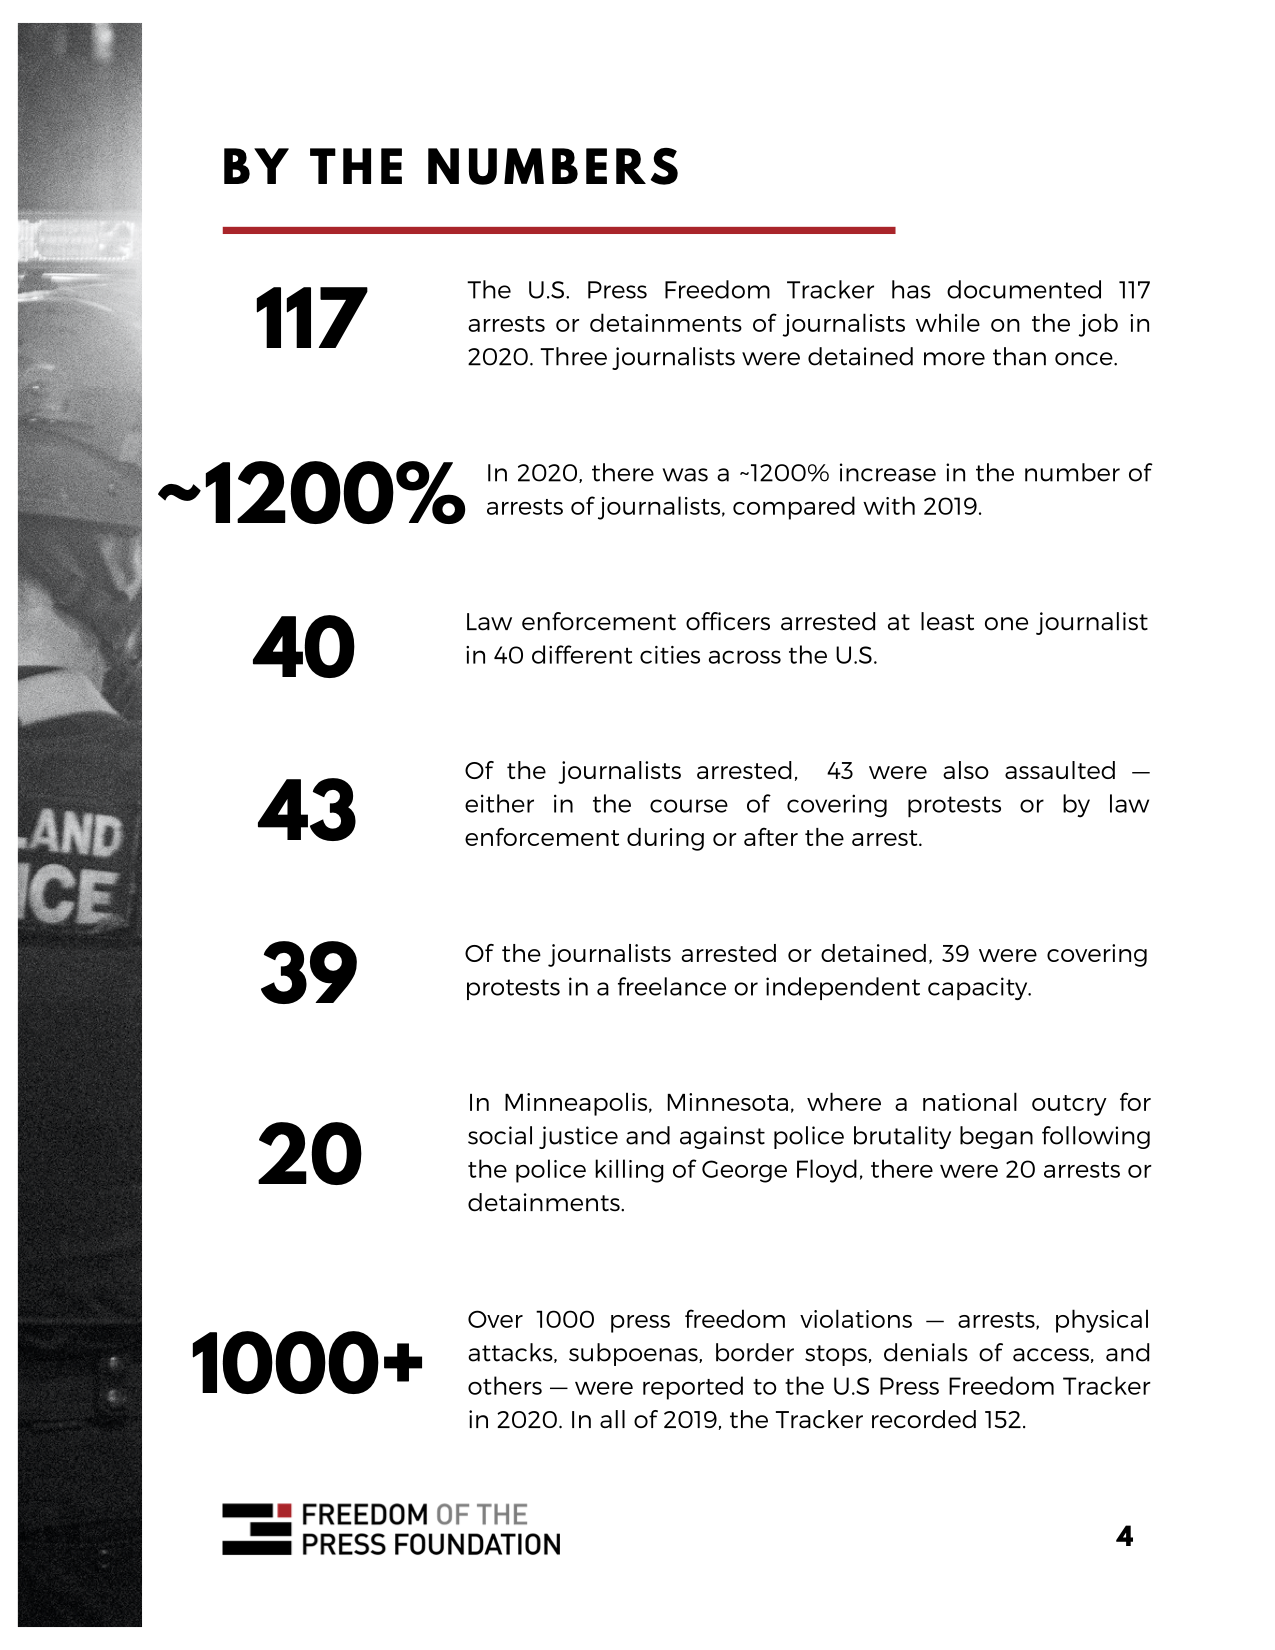 A screenshot of one page from the U.S. Press Freedom Tracker arrest report, detailing numbers of U.S. reporters arrested throughout 2020.